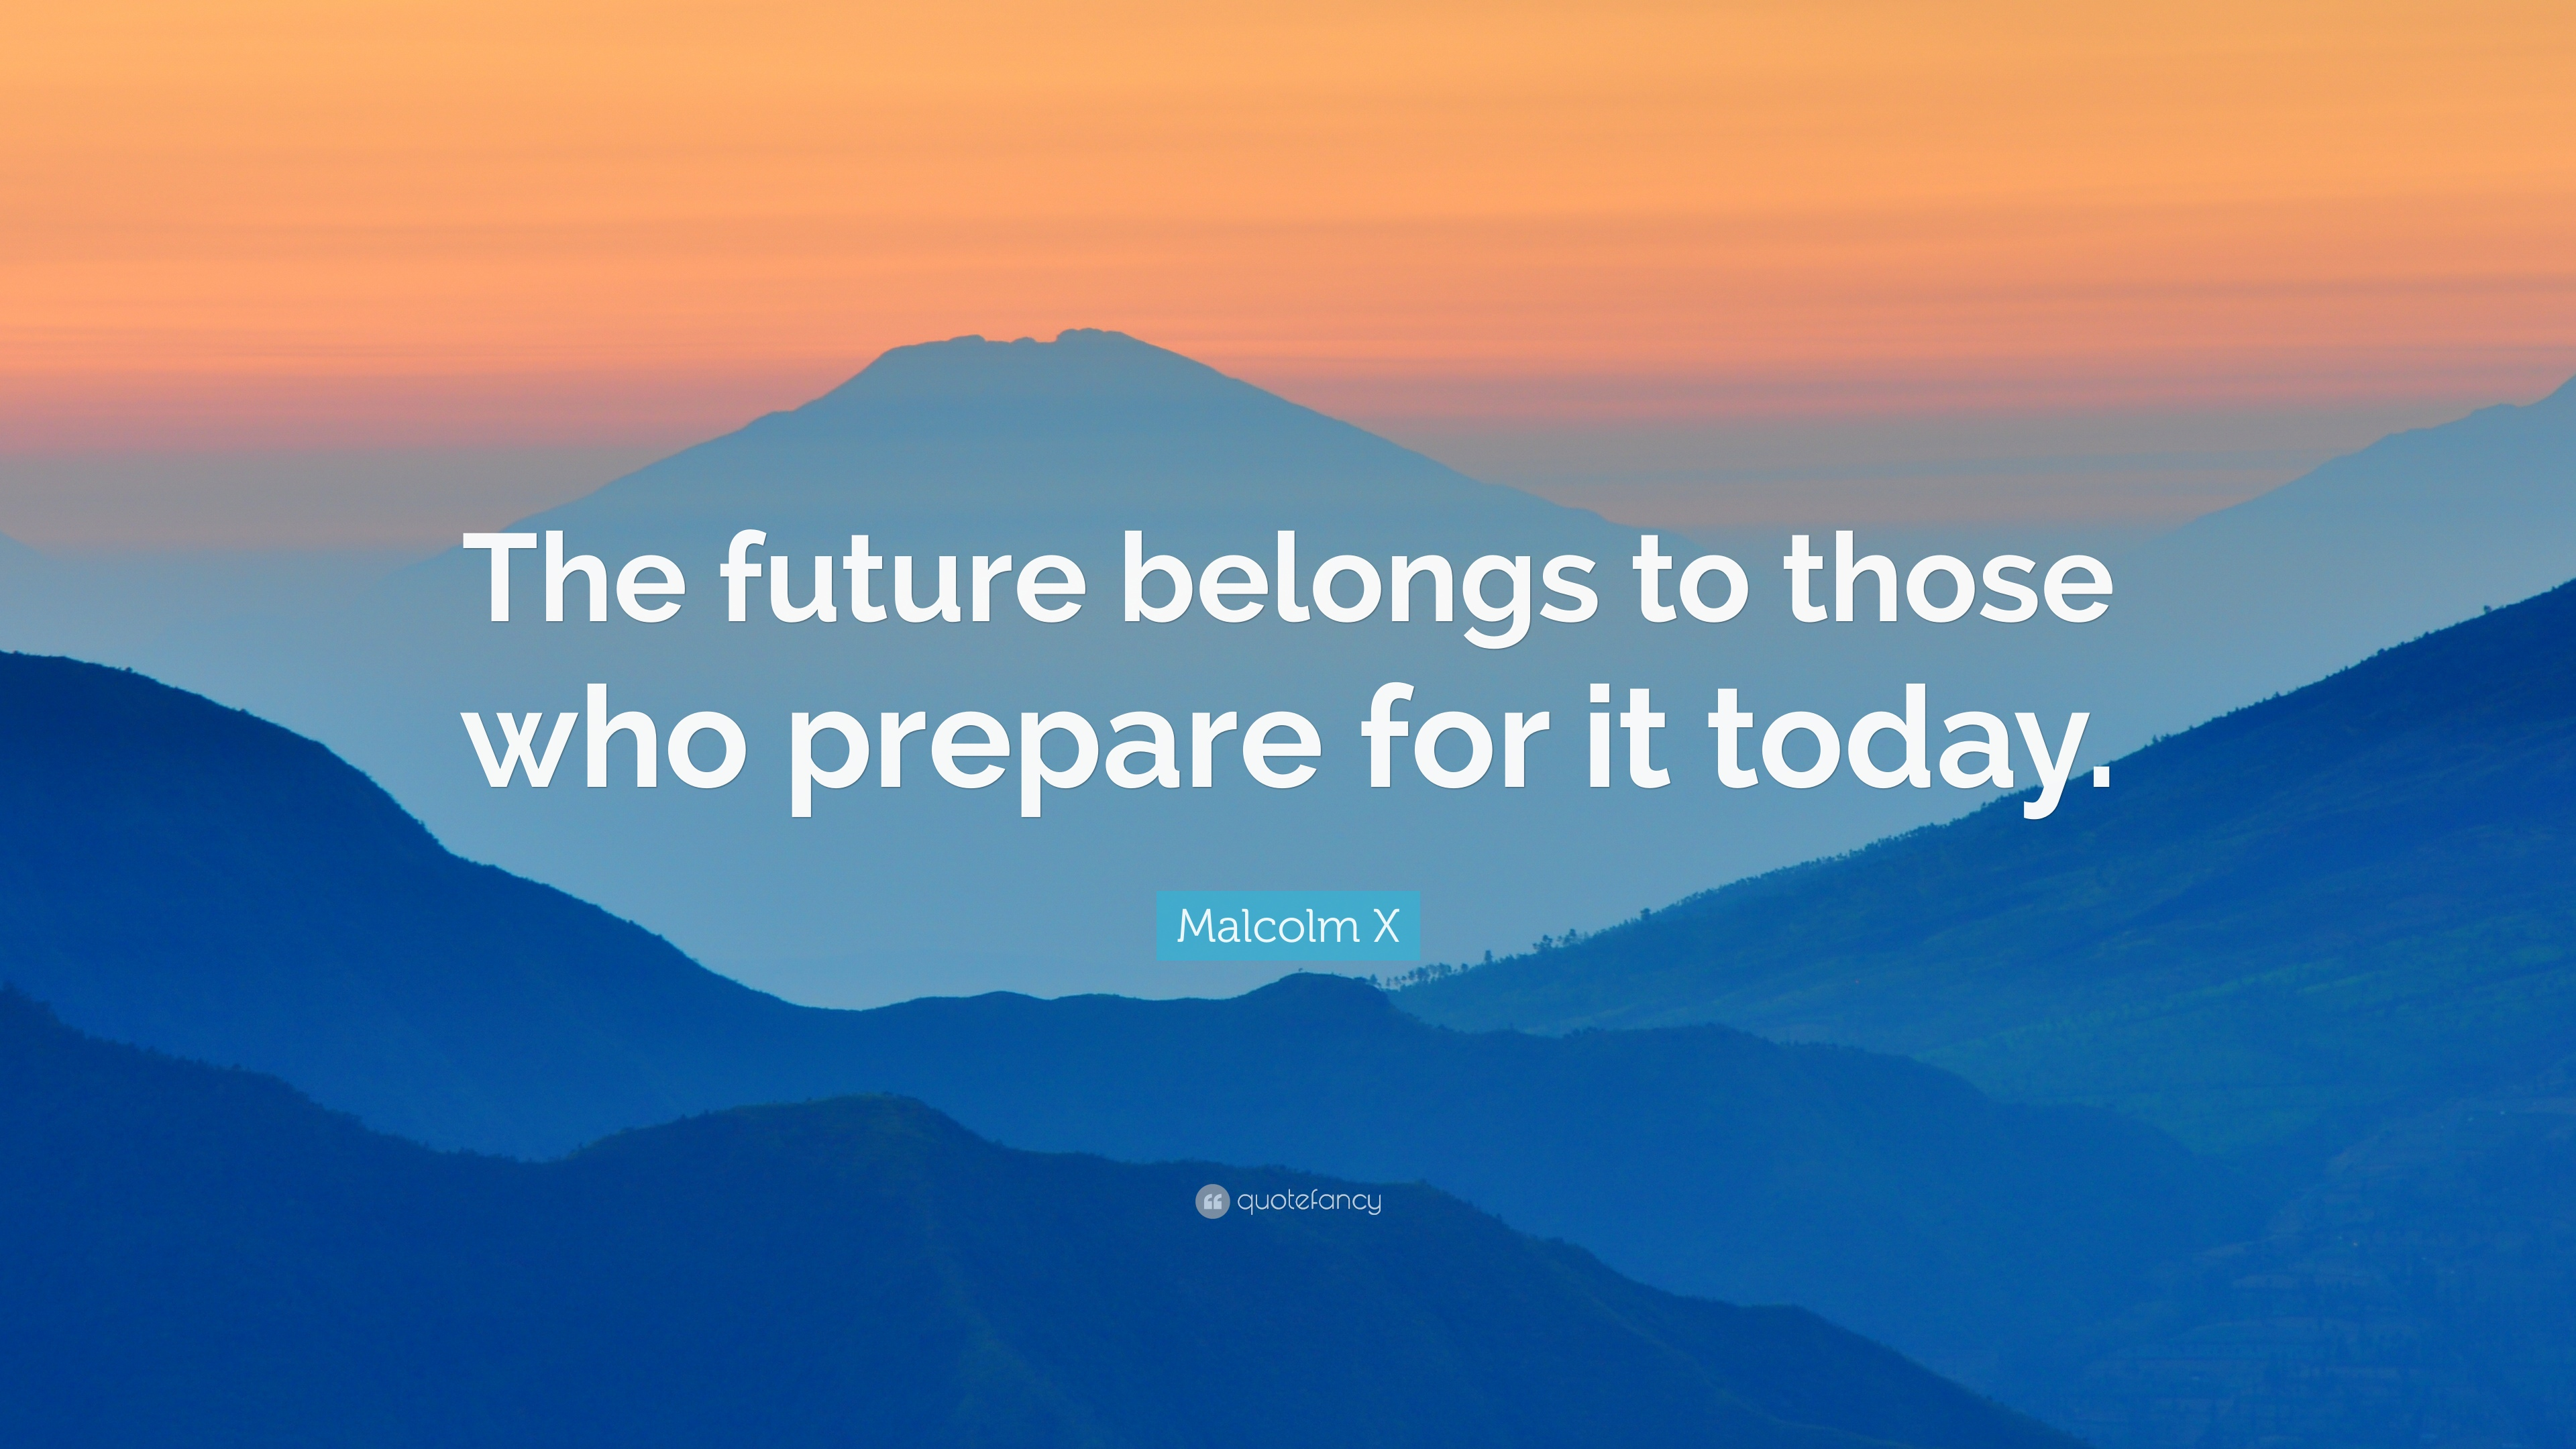 Malcolm X Quote The Future Belongs To Those Who Prepare